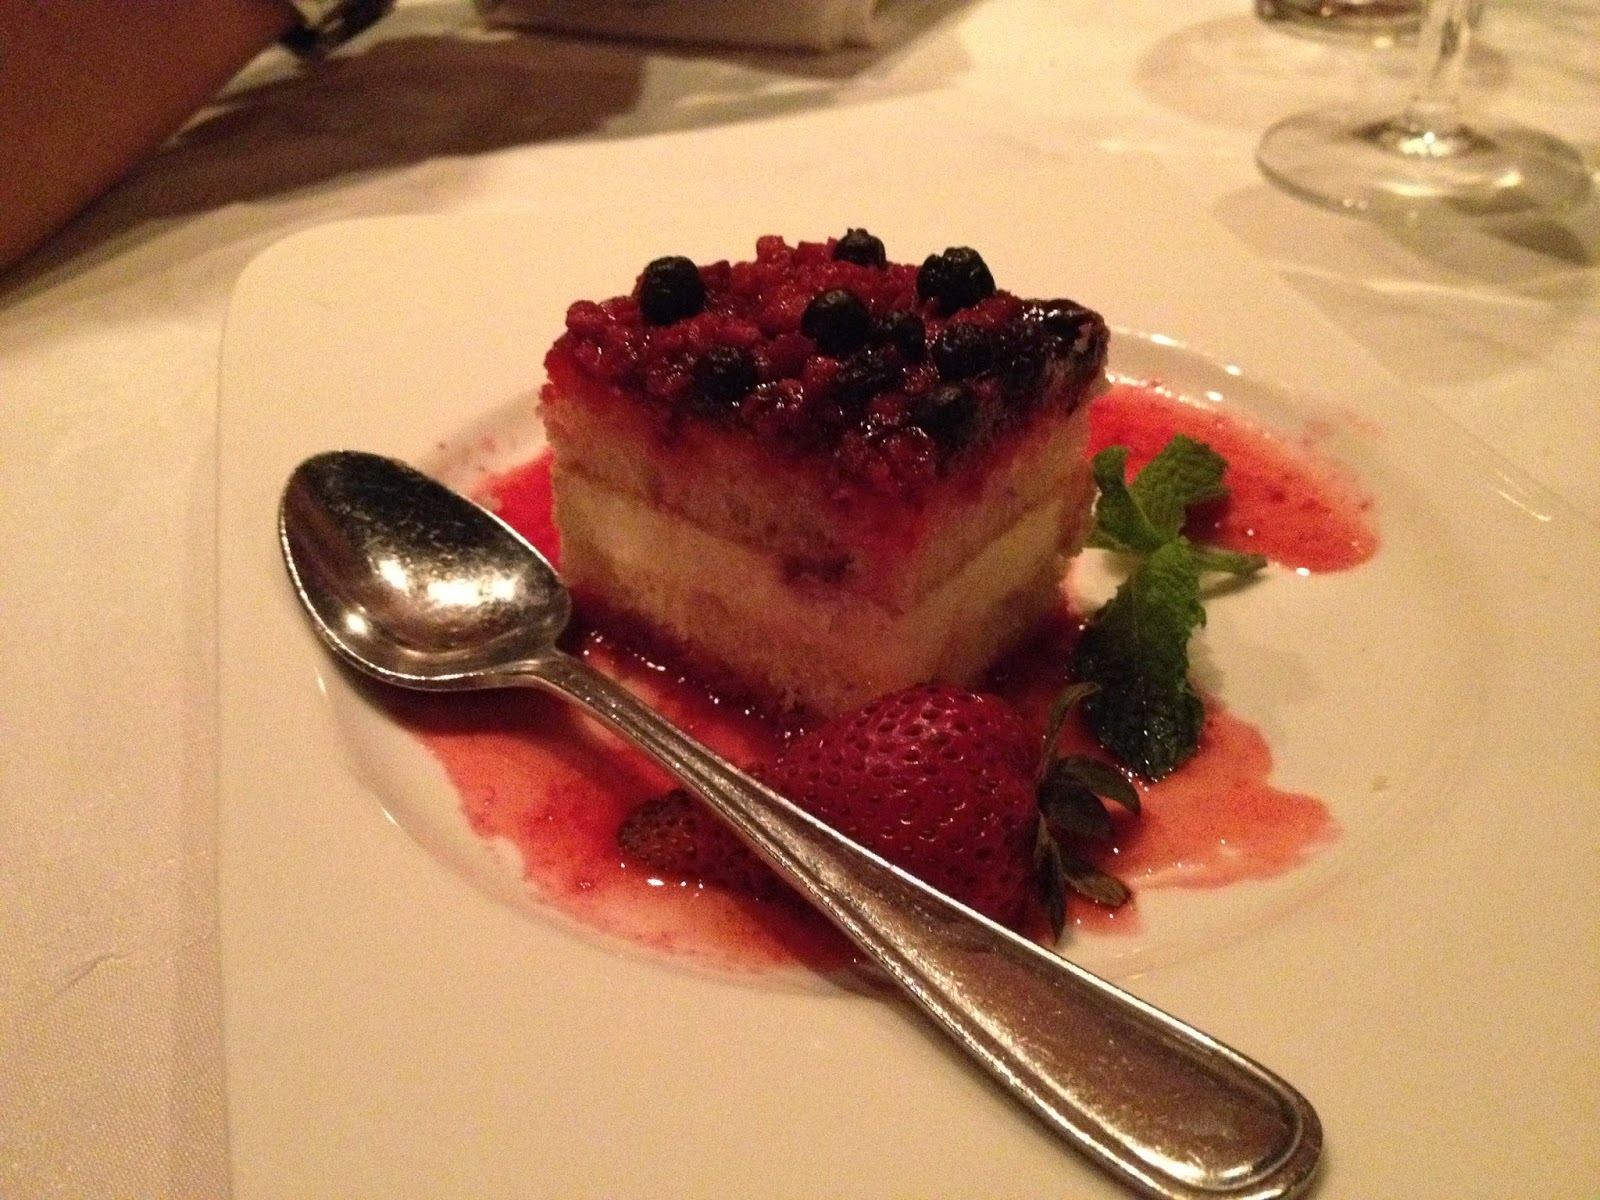 Mixed berry shortcake from Fred's Not Here